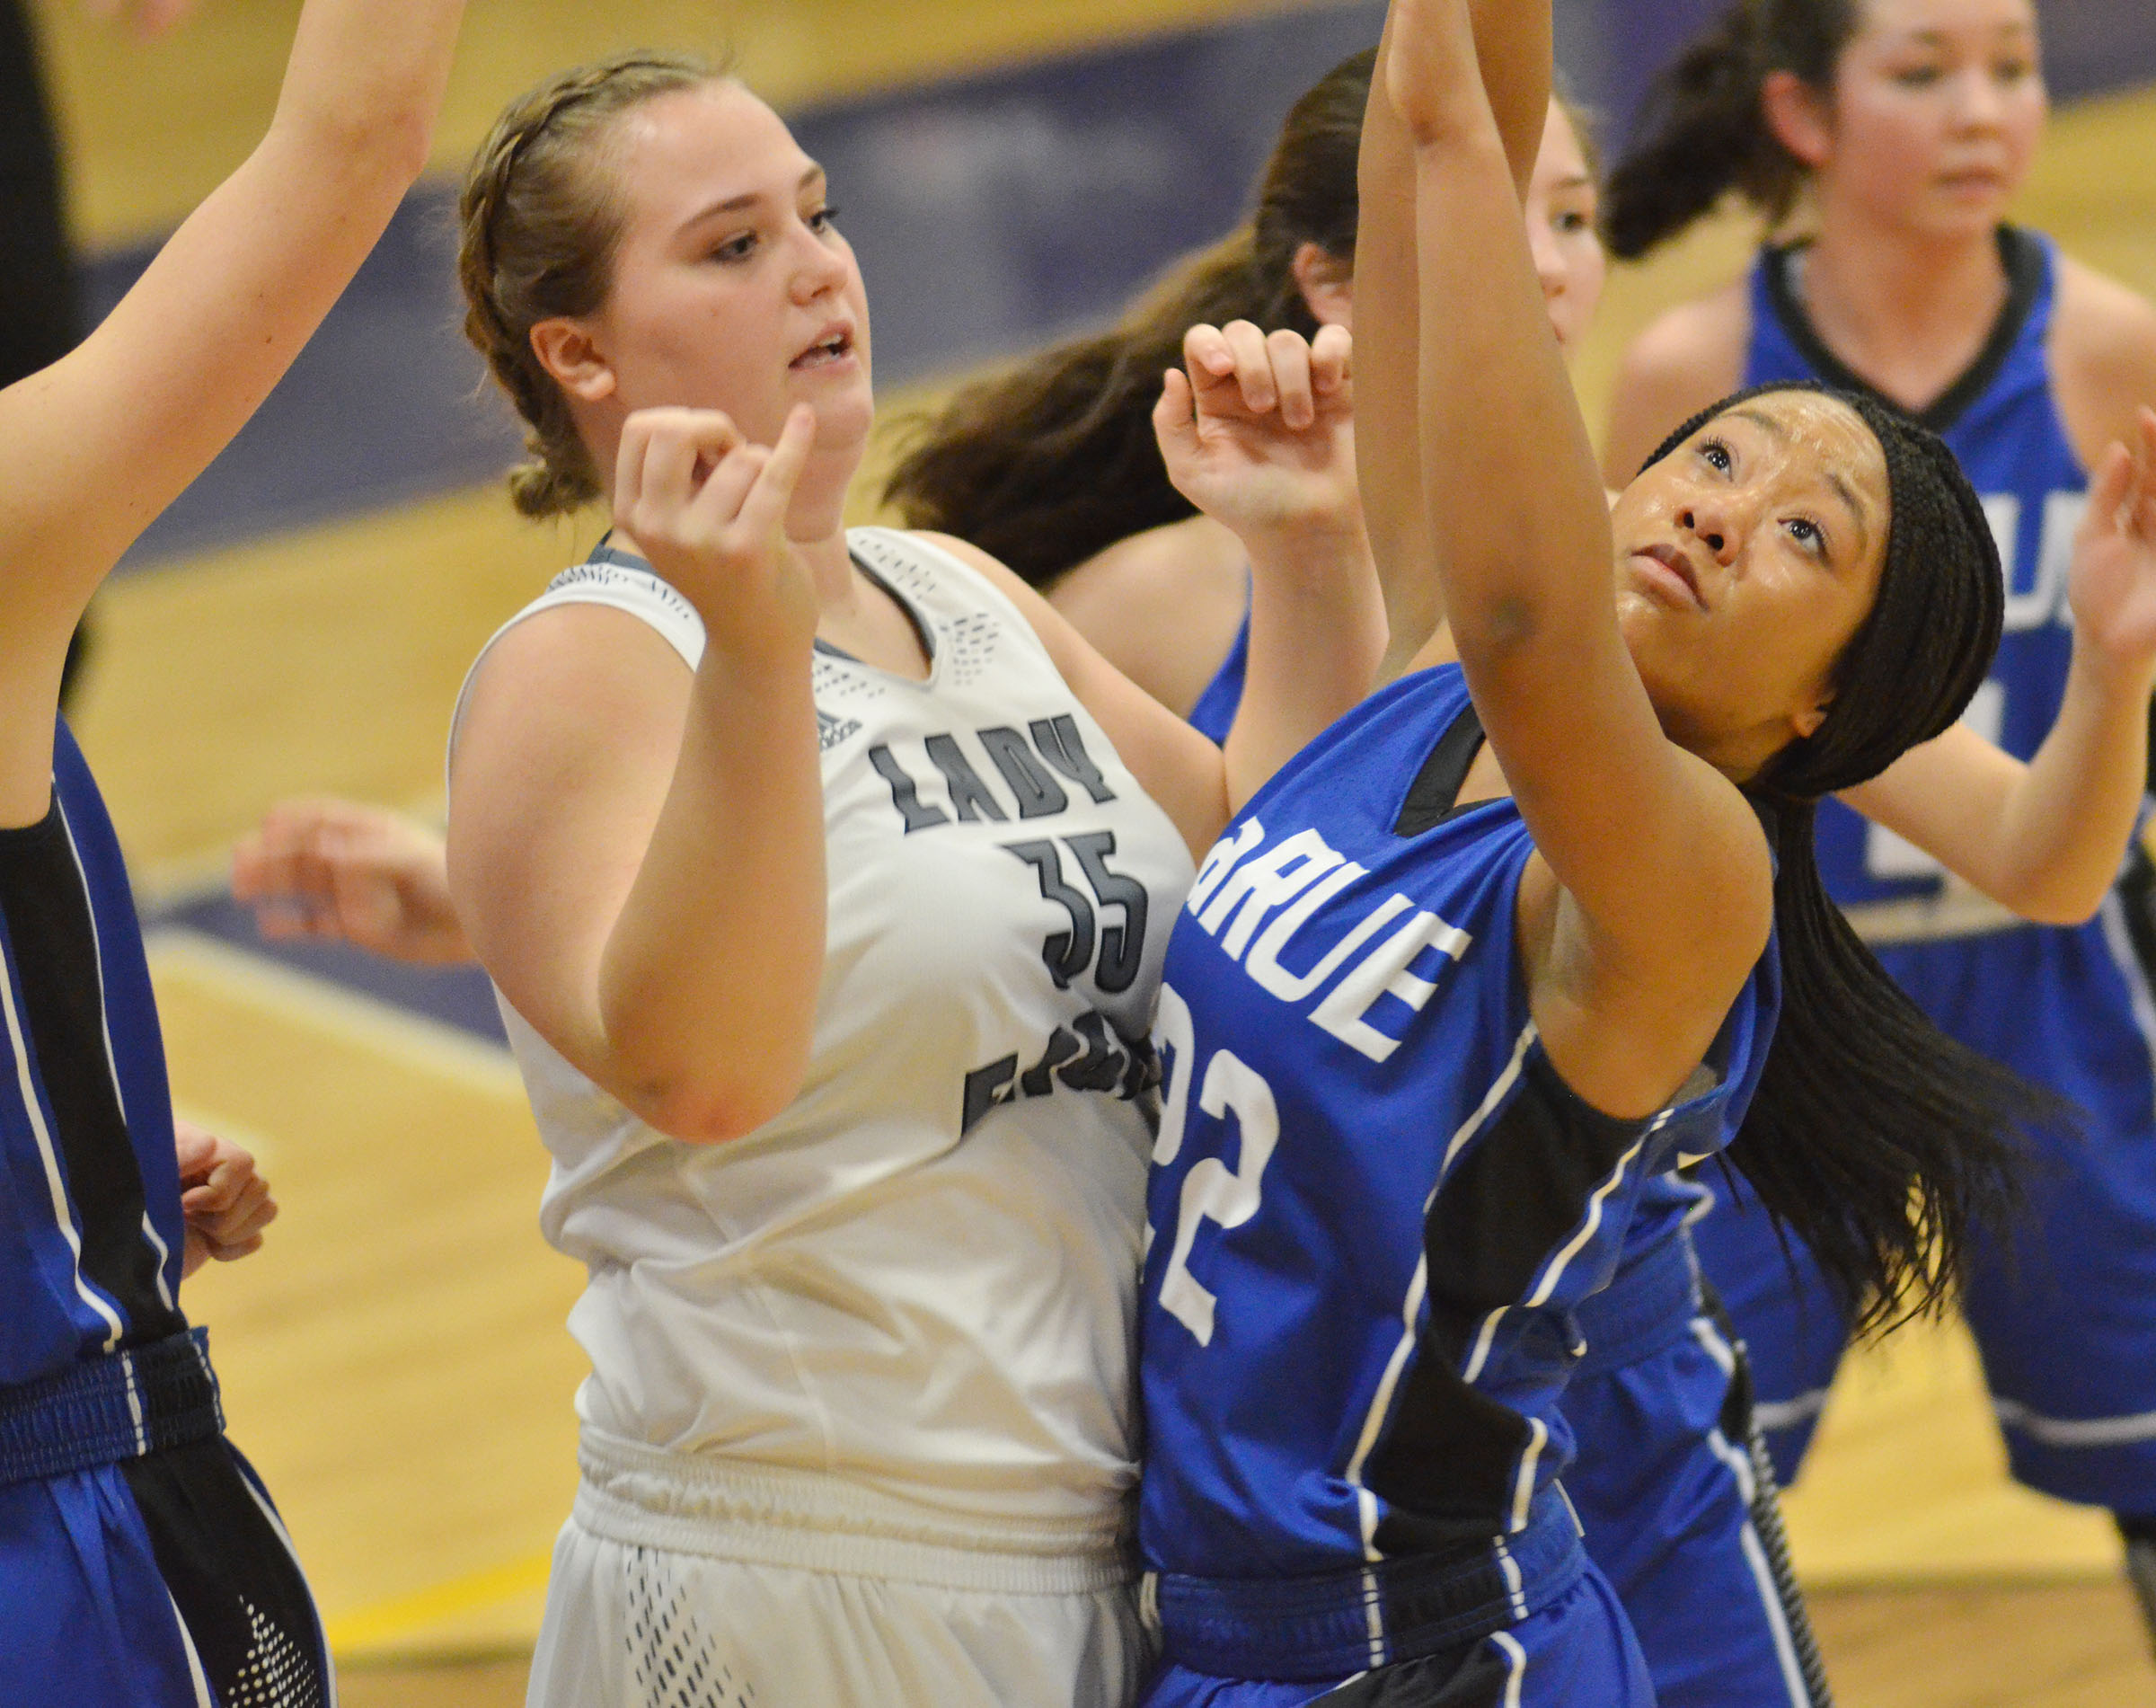 CHS senior Brenna Wethington battles for a rebound.